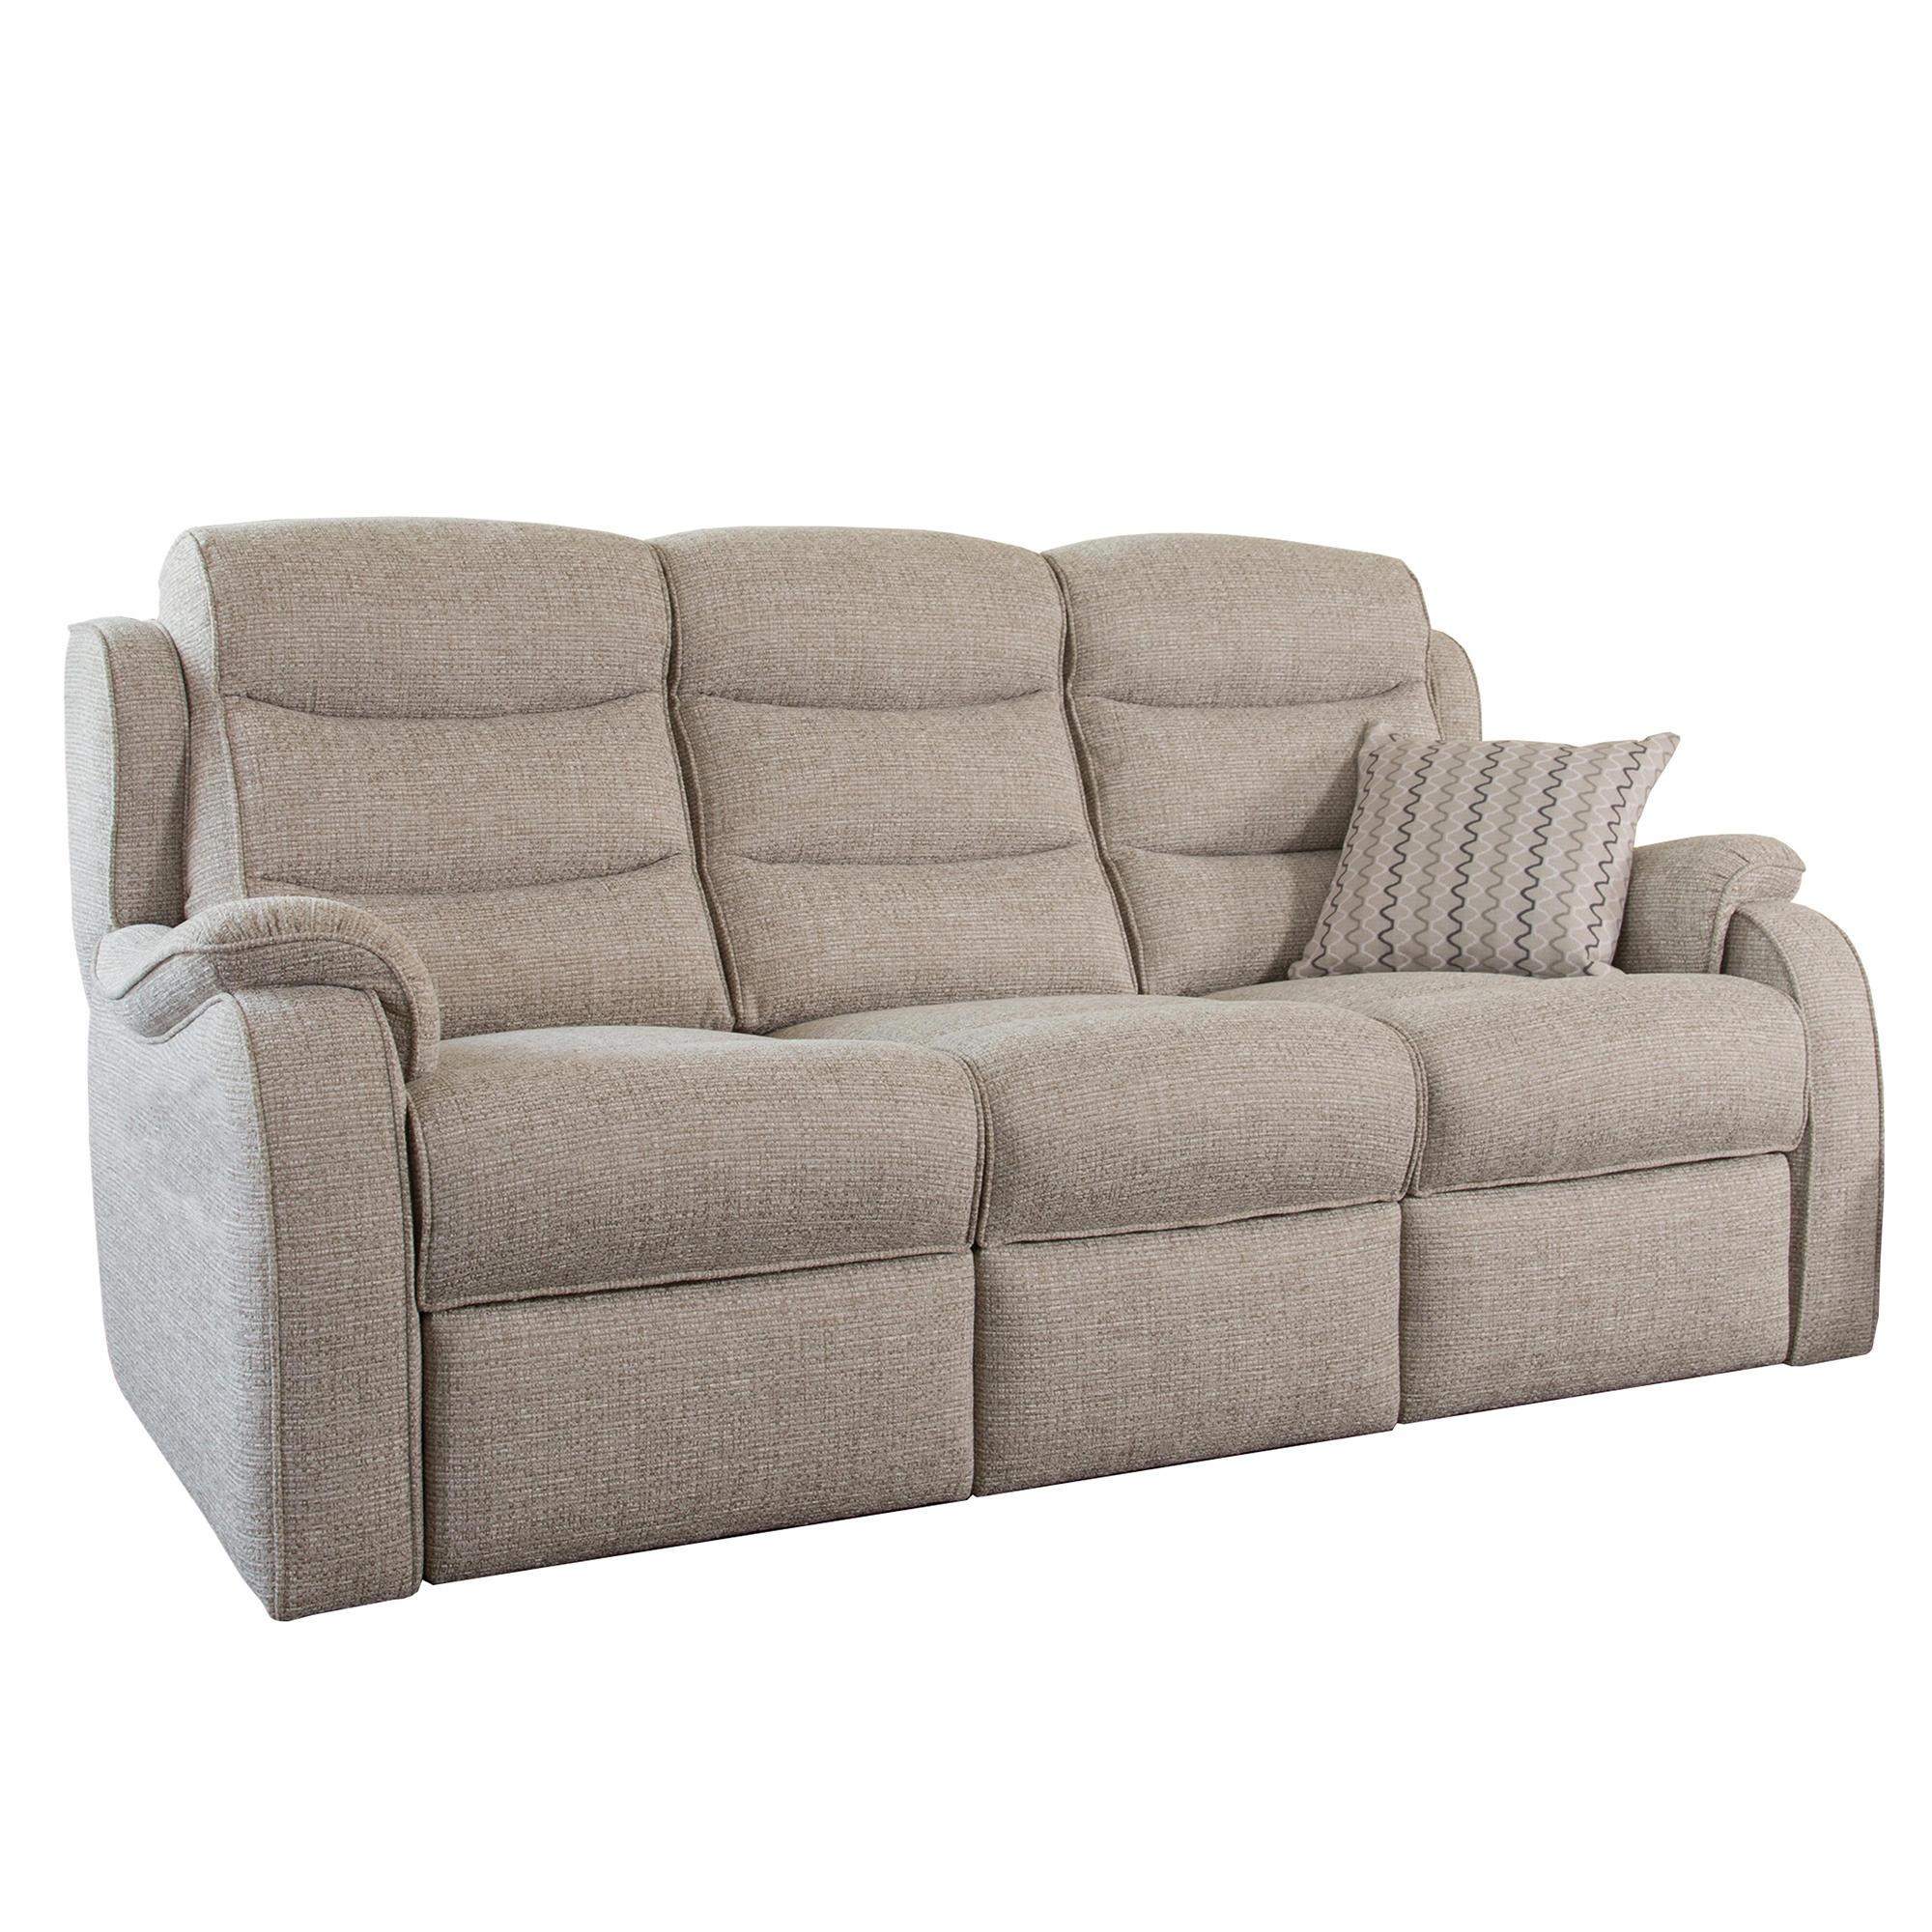 Parker Knoll Michigan 3 Seater Sofa All Sofas